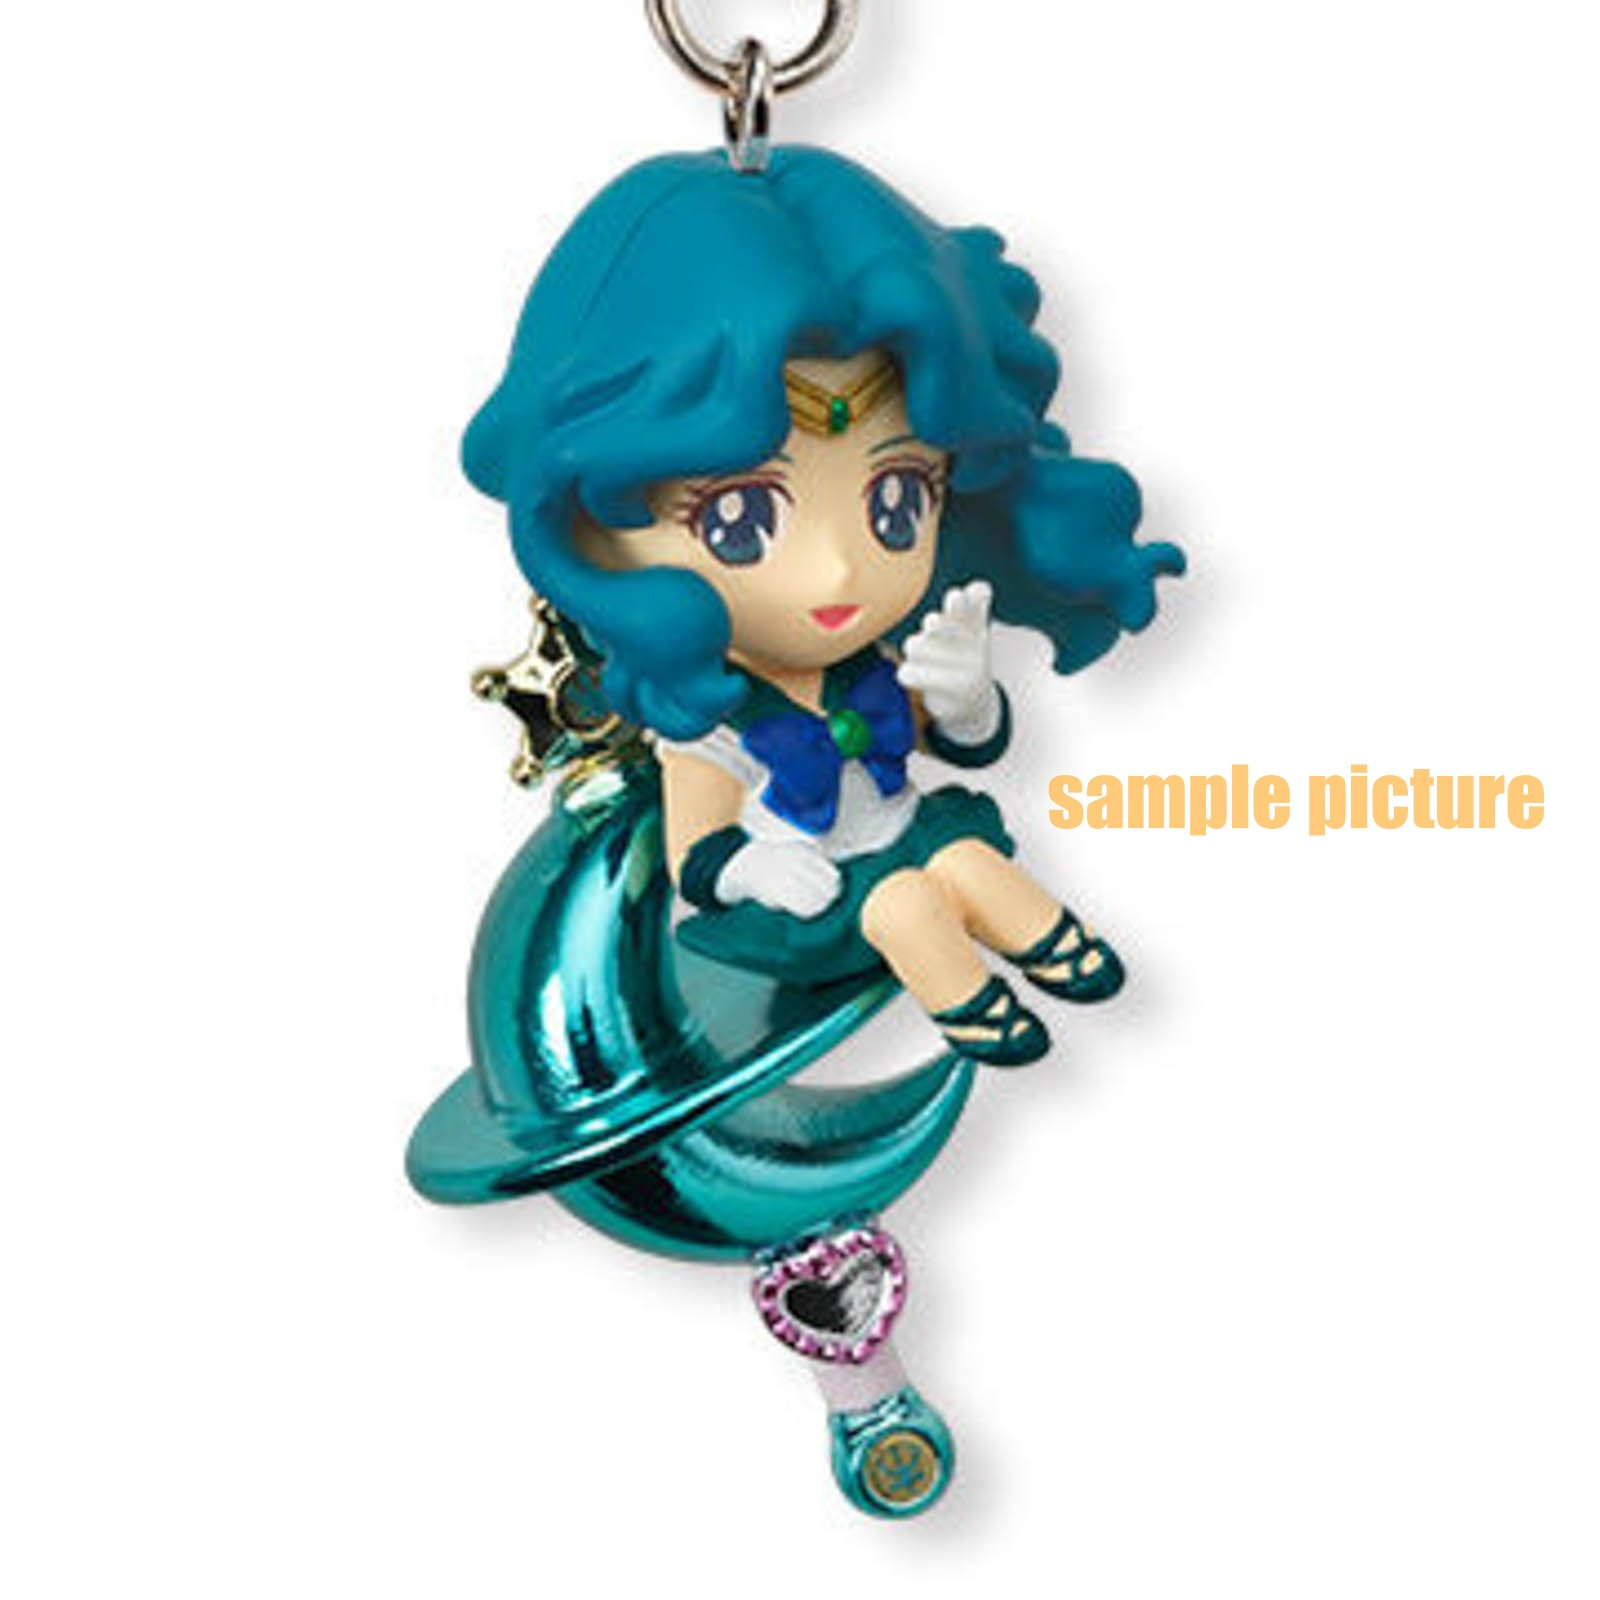 Sailor Moon Sailor Neptune Twinkle Dolly 2 Figure Strap JAPAN ANIME